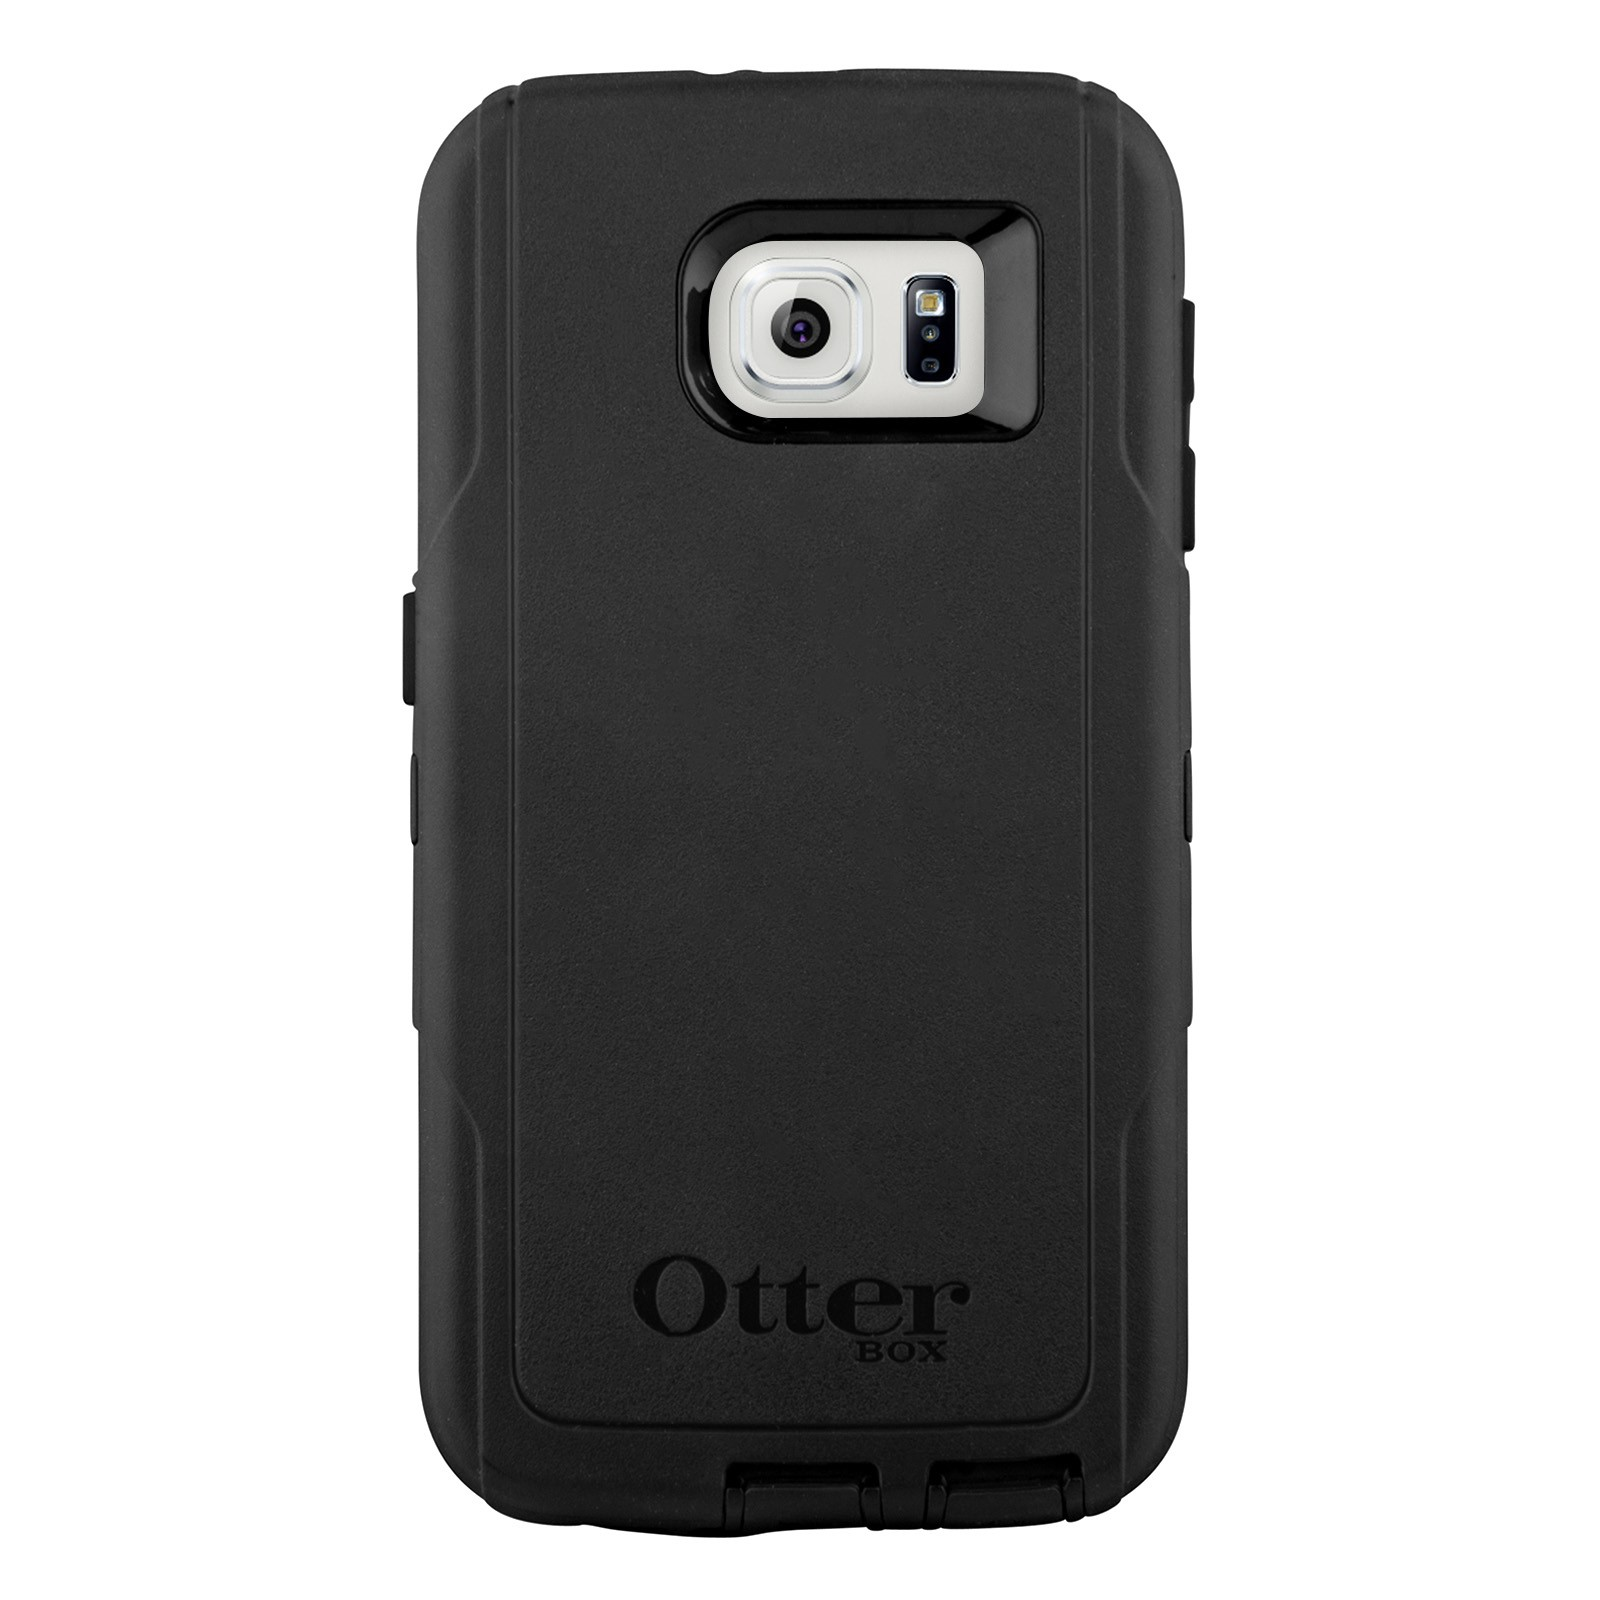 how to get a free otterbox